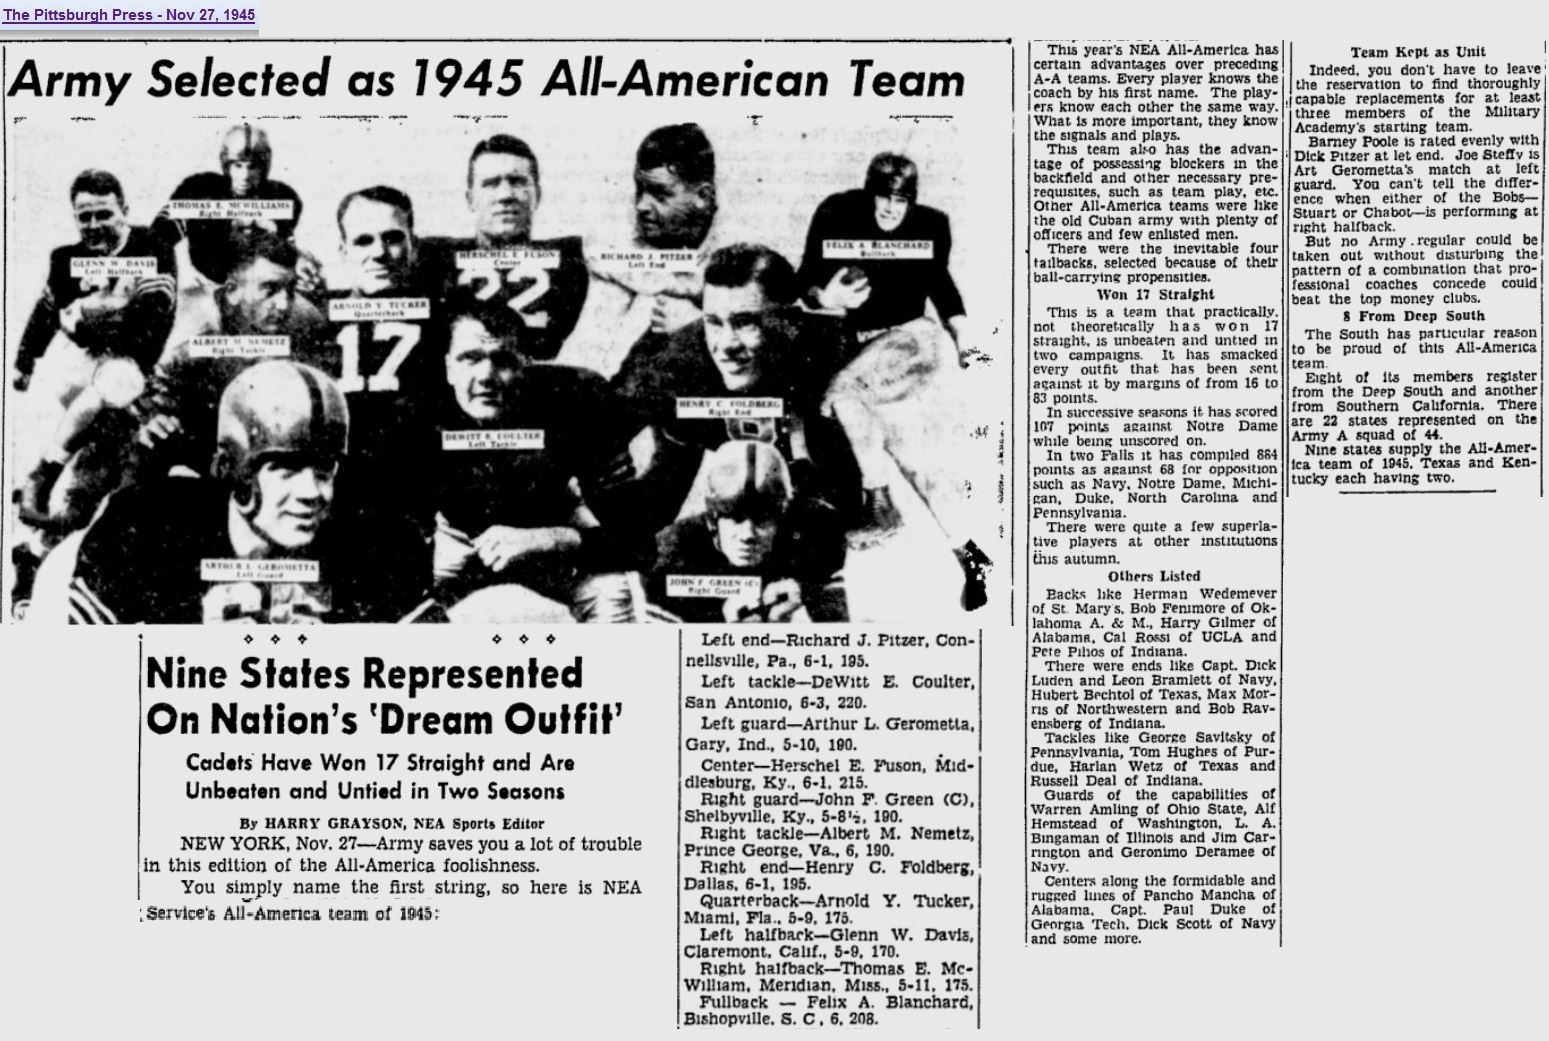 armyfb_1945_all-american_1945_nea_entirearmyfirstteam_pittsburghpress_nov271945